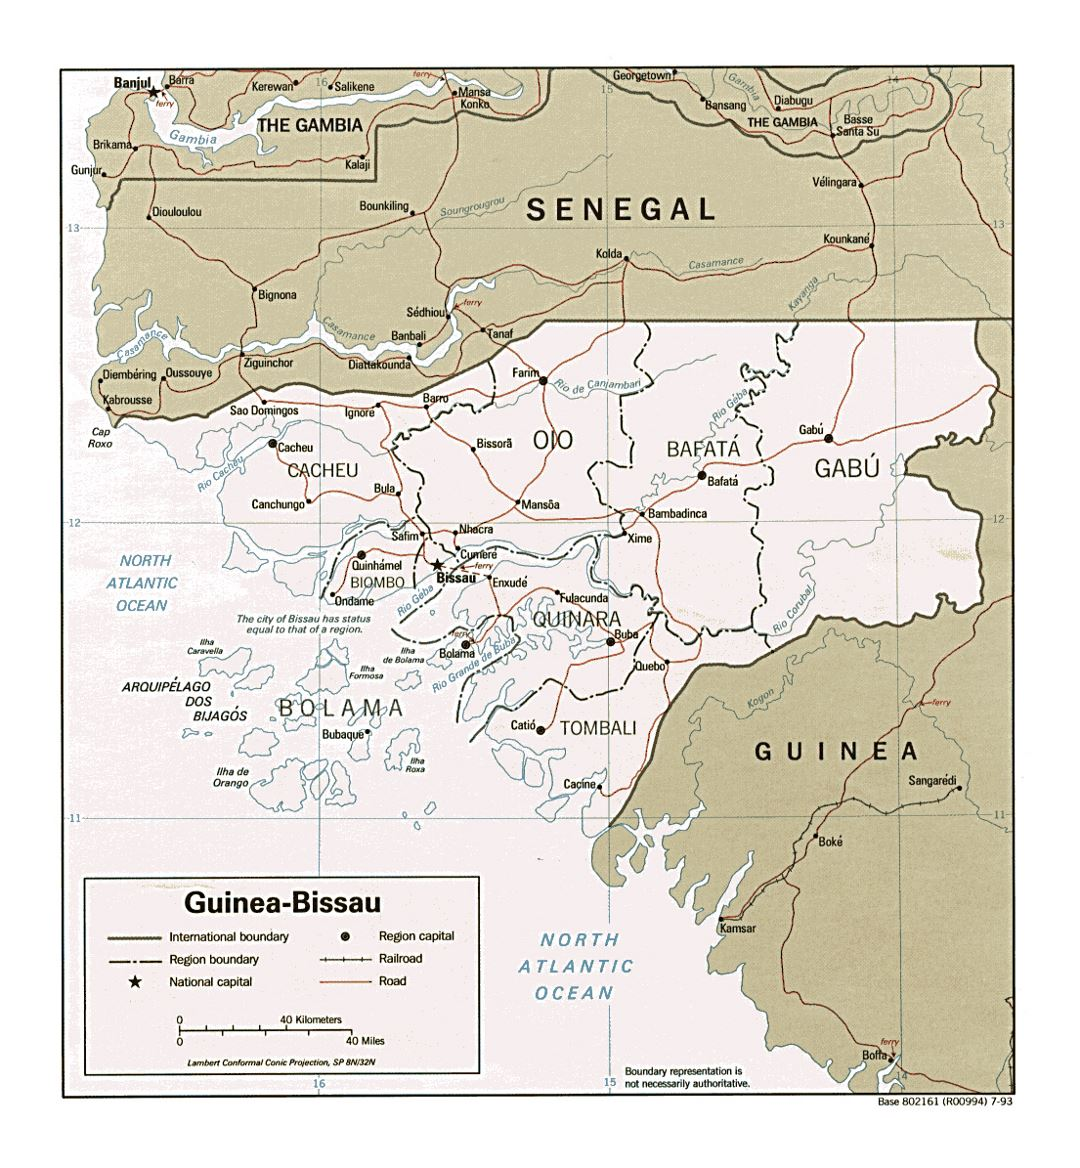 Detailed political and administrative map of Guinea-Bissau with roads, railroads and major cities - 1993